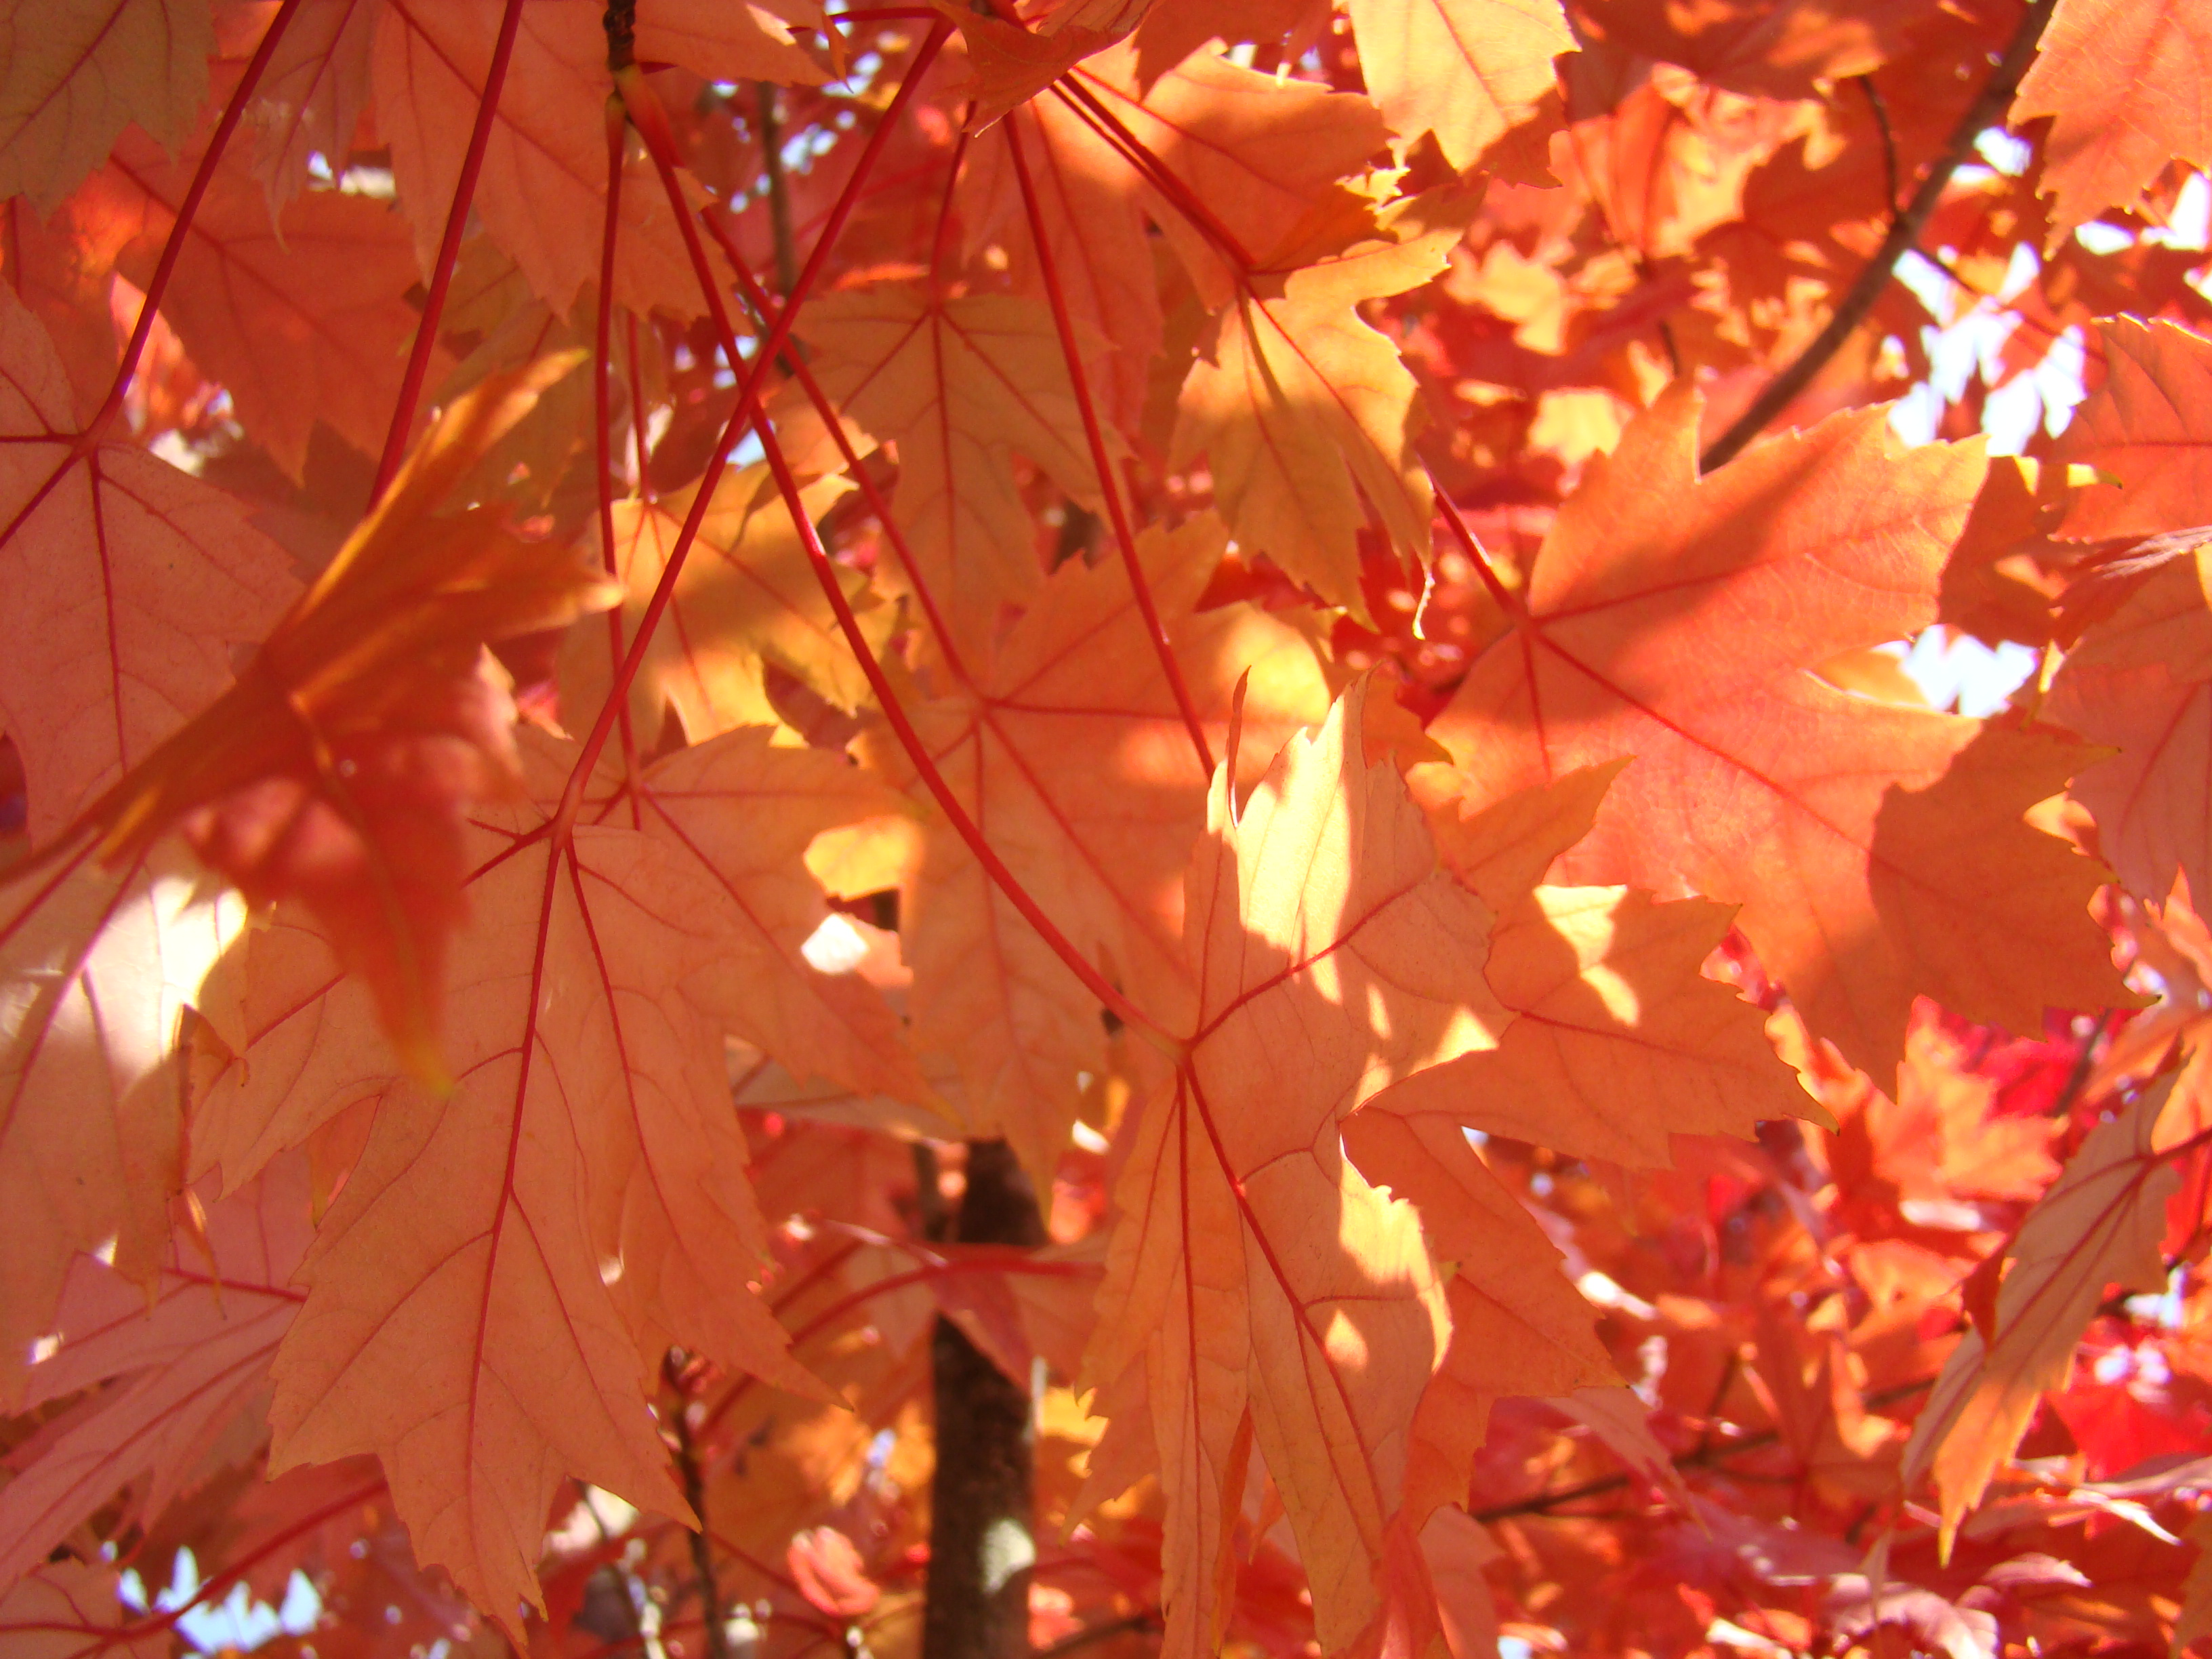 Art Prints Autumn Leaves Sunlit Fall Season Trees Baslee Tro ...